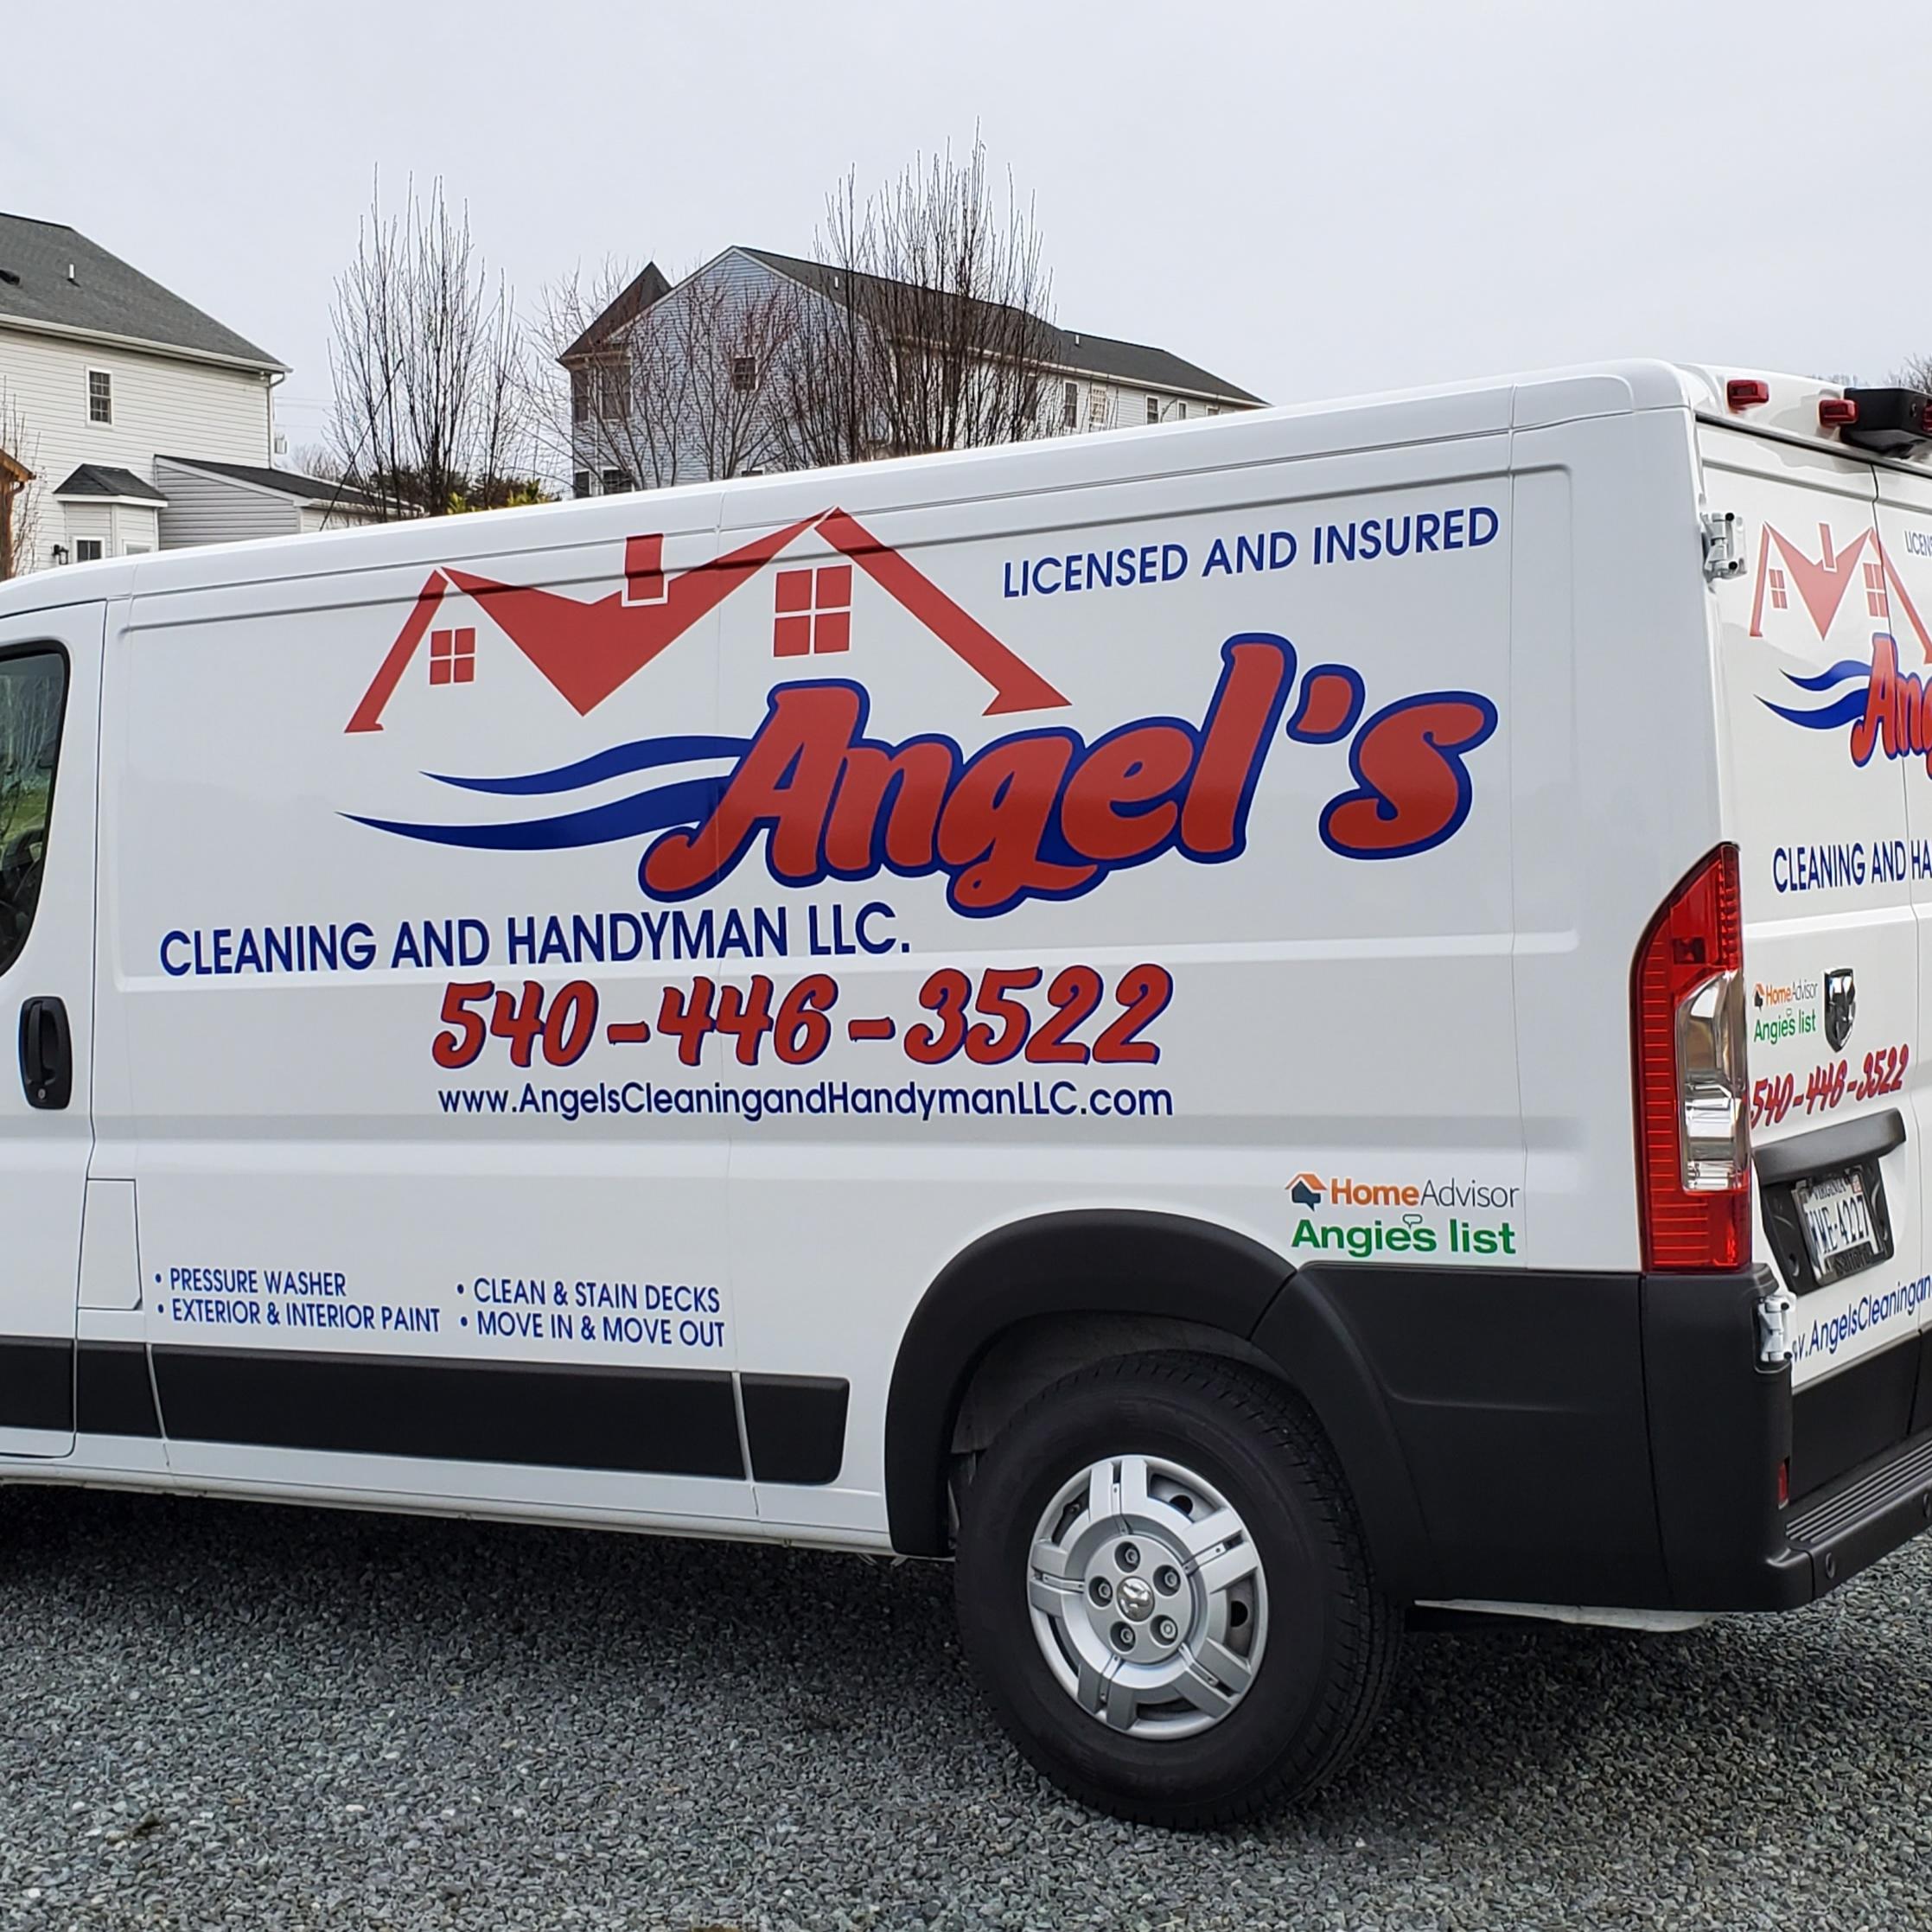 Angel's House Cleaning & Handyman Services